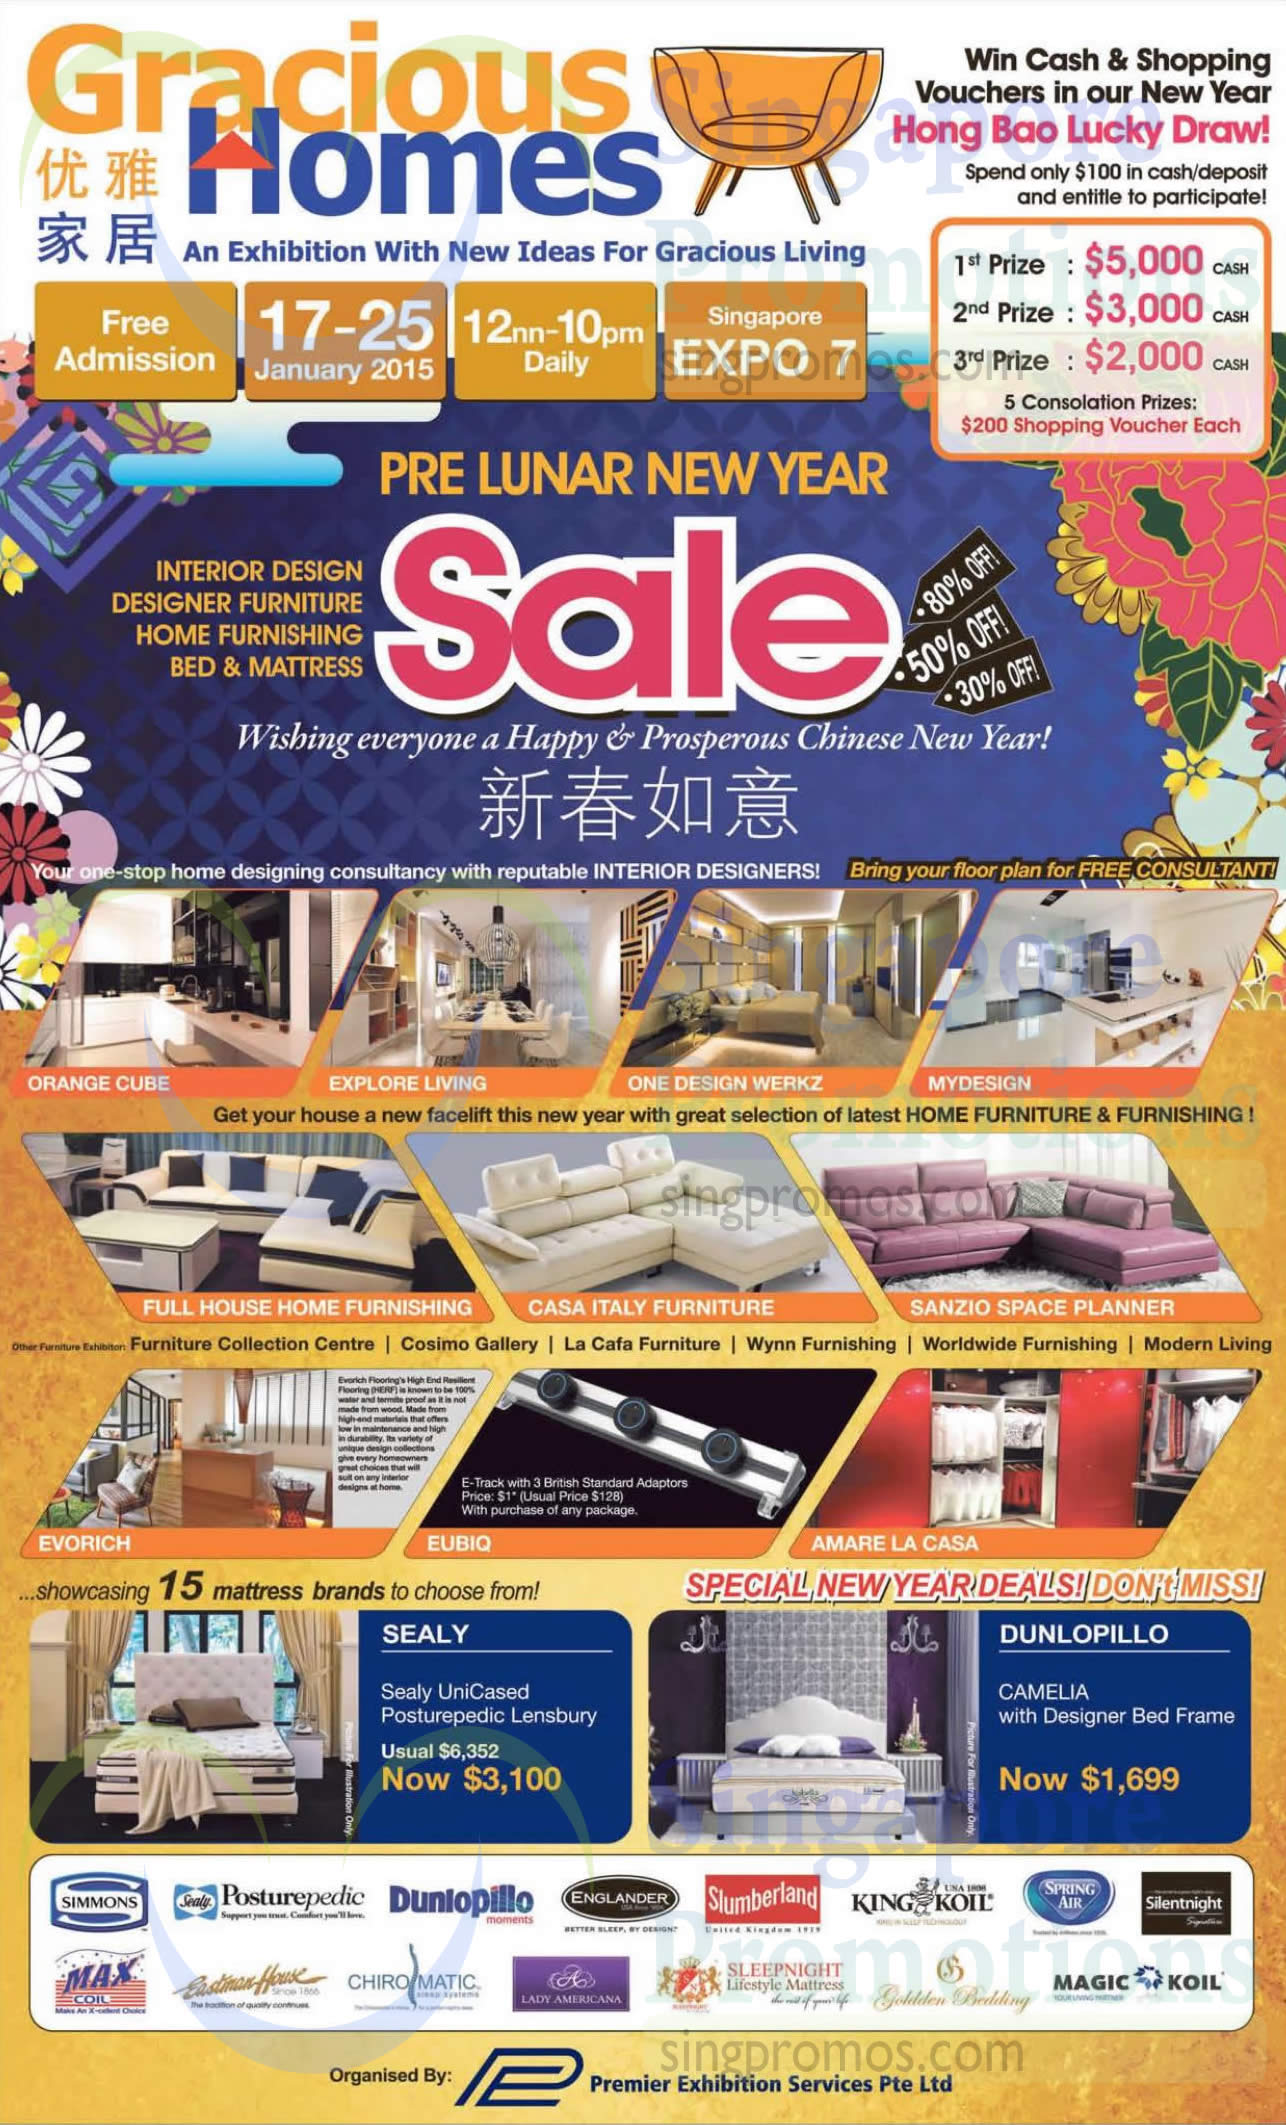 Gracious Homes 17 Jan 2015 Gracious Homes 2015